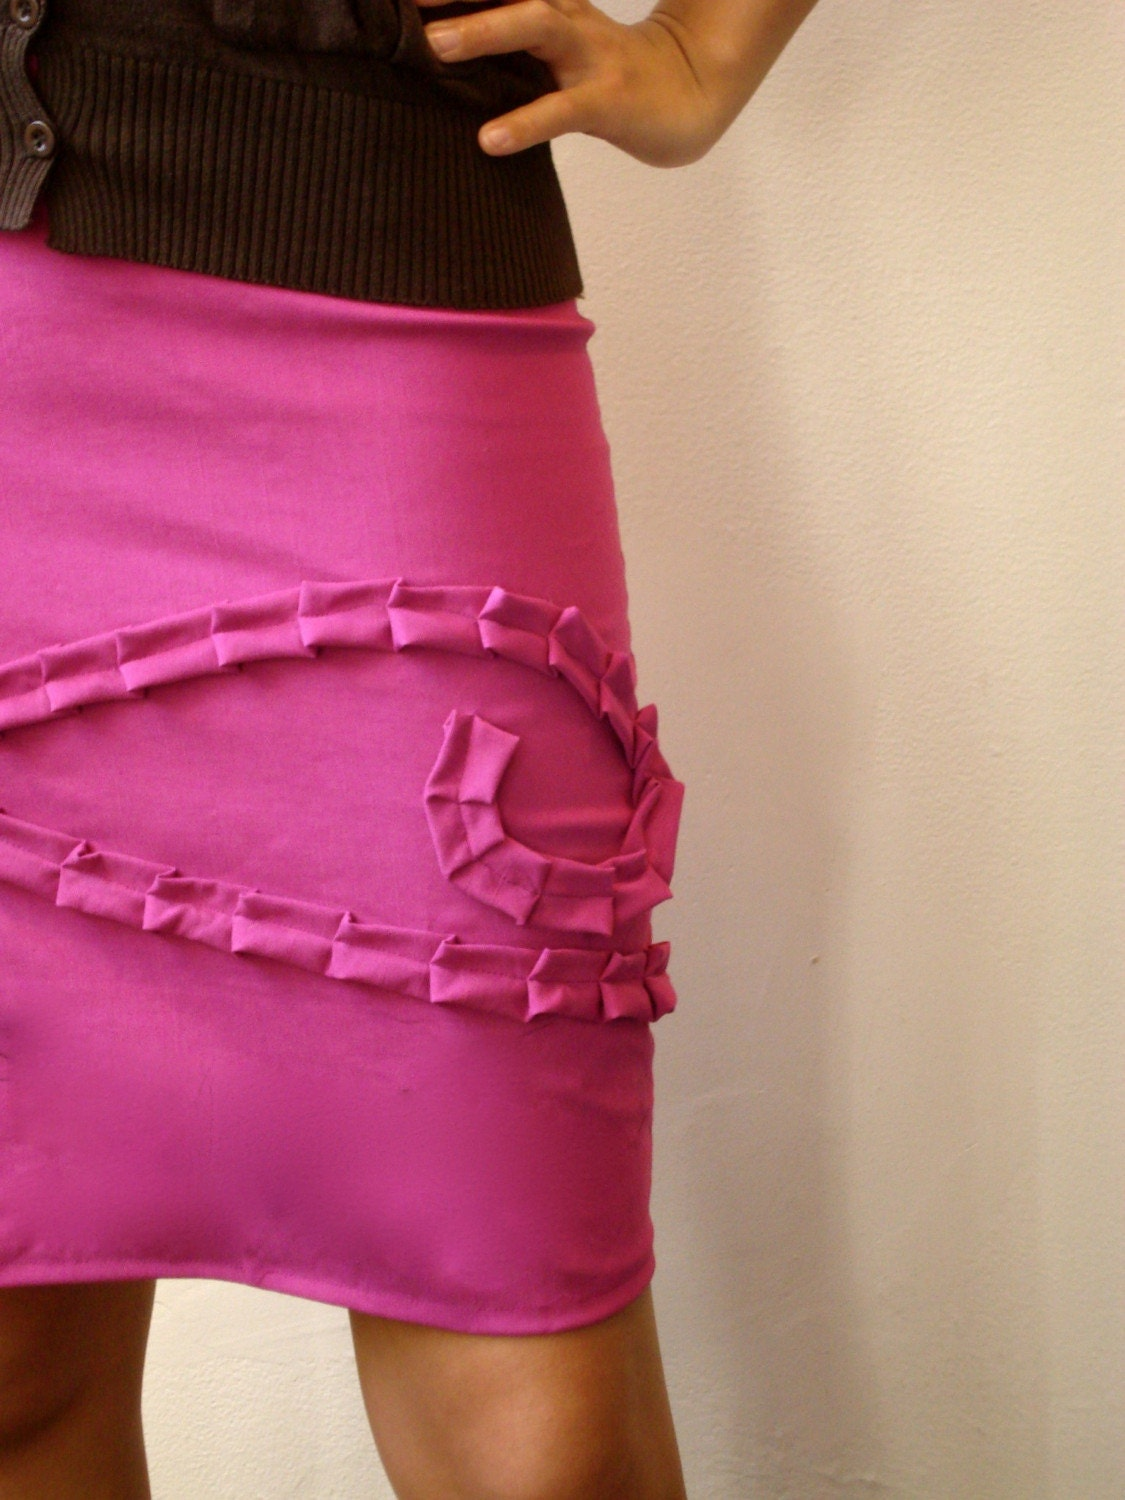 Nicole Skirt - All colors, XS, S, M, L, XL